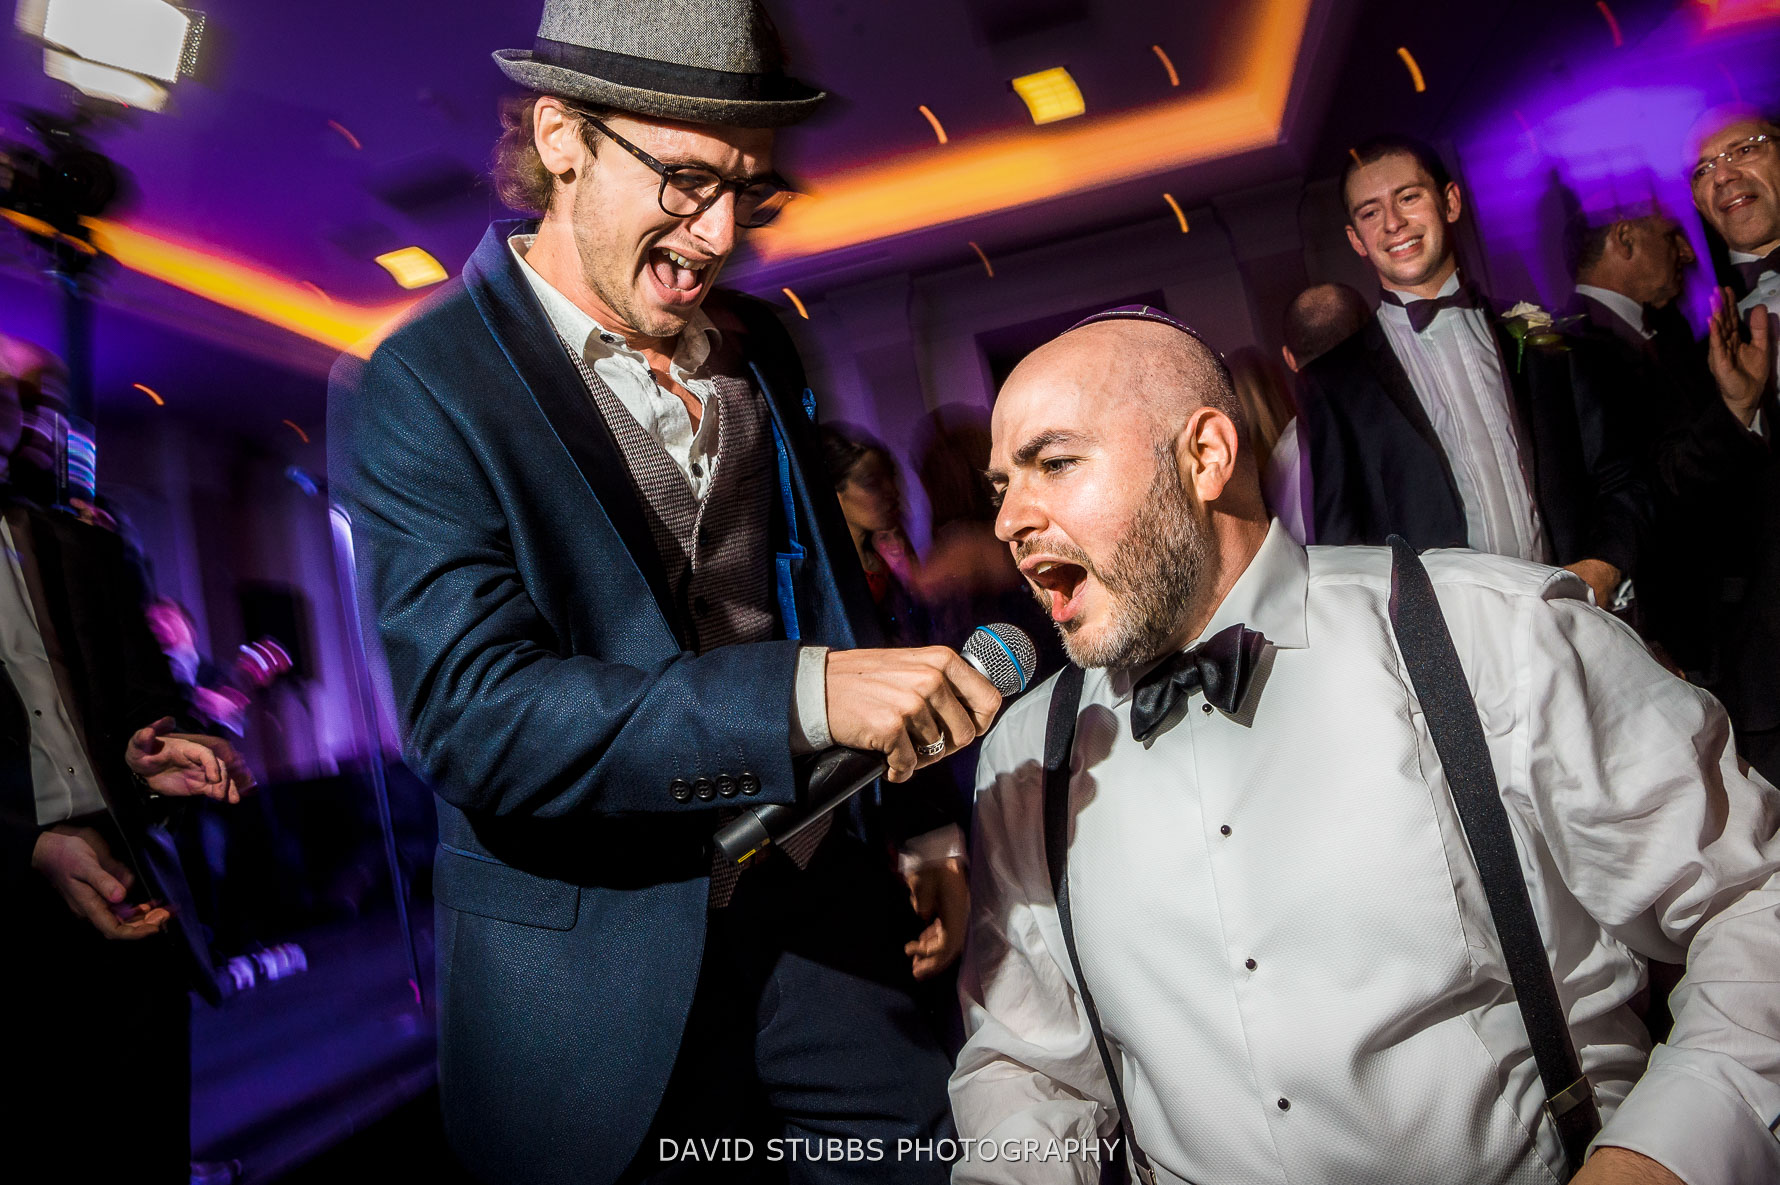 grooms joins in music